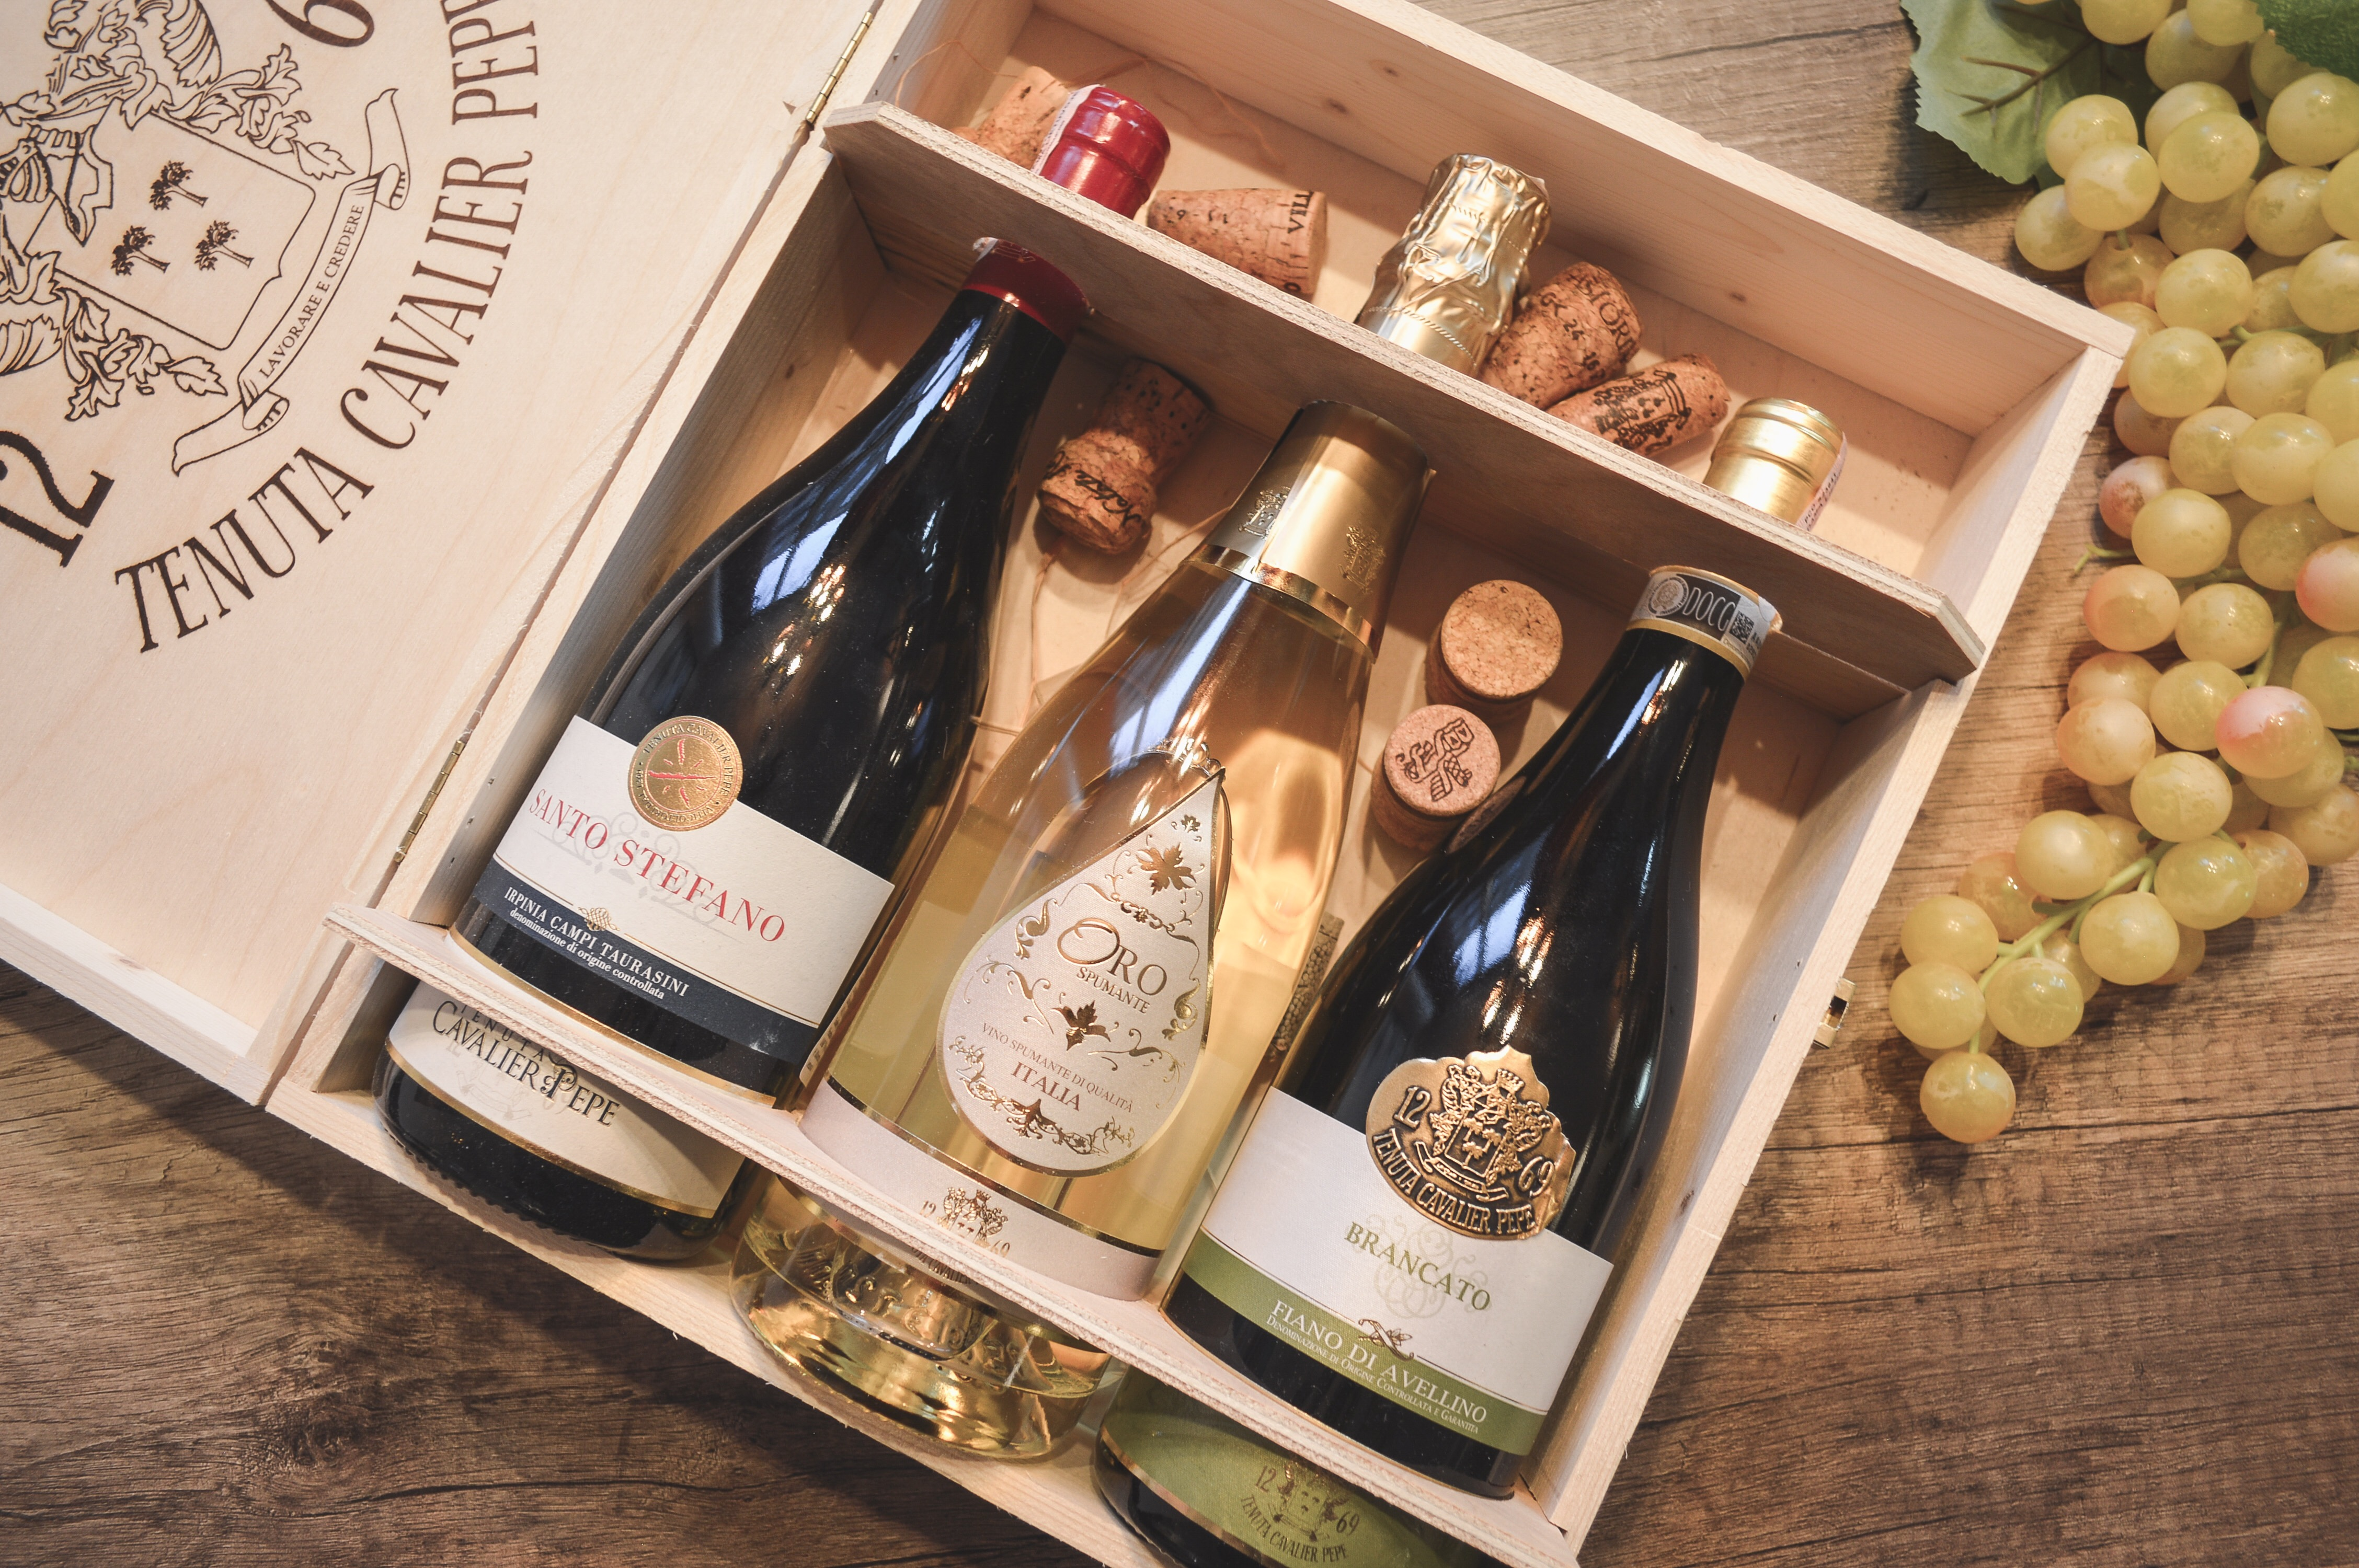 Italian wine. Gifts in Klaipeda. Store. Winery